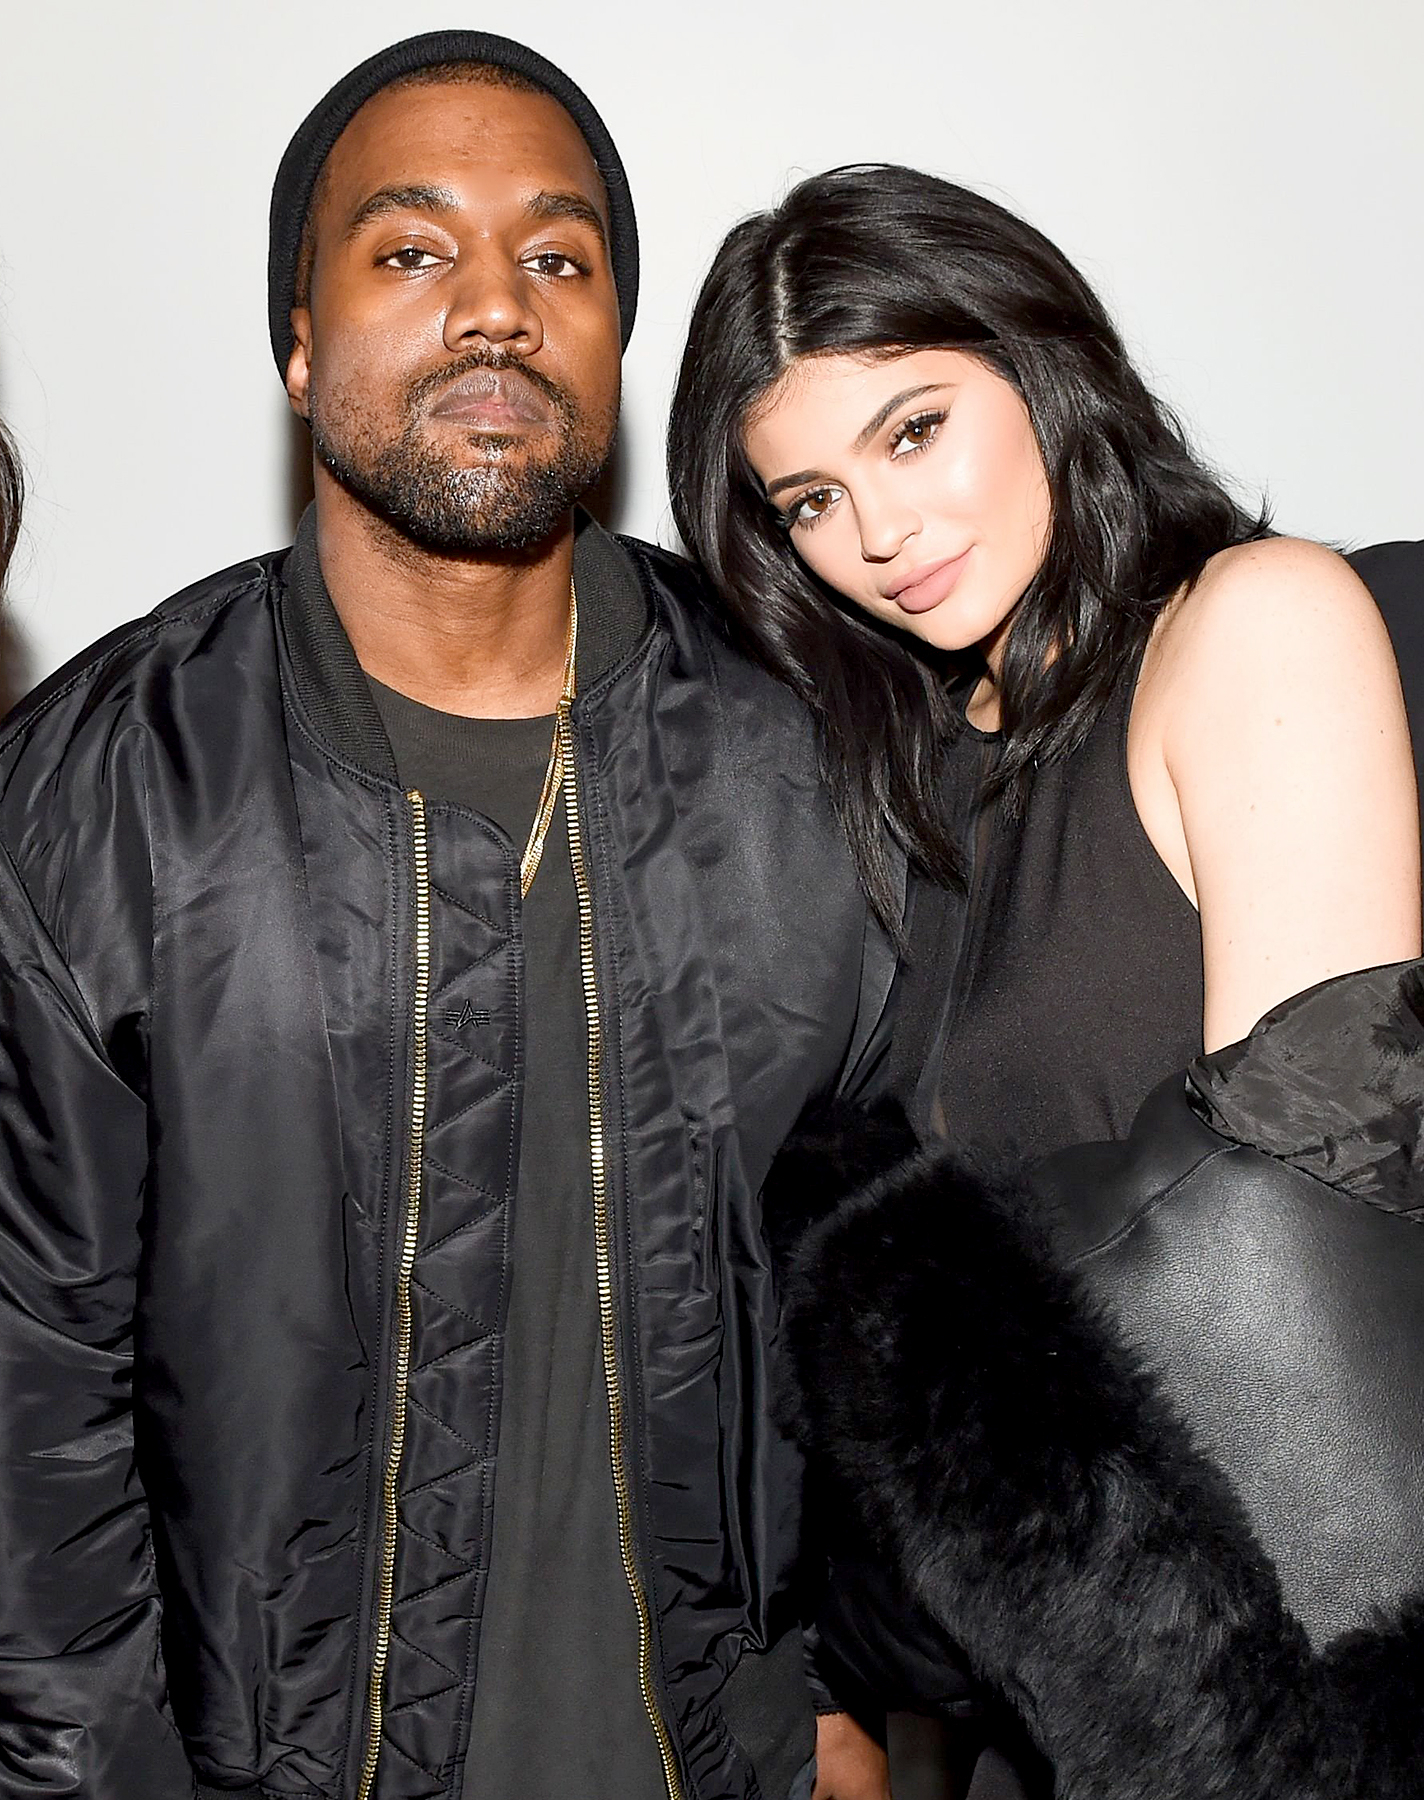 Kanye West and Kylie Jenner